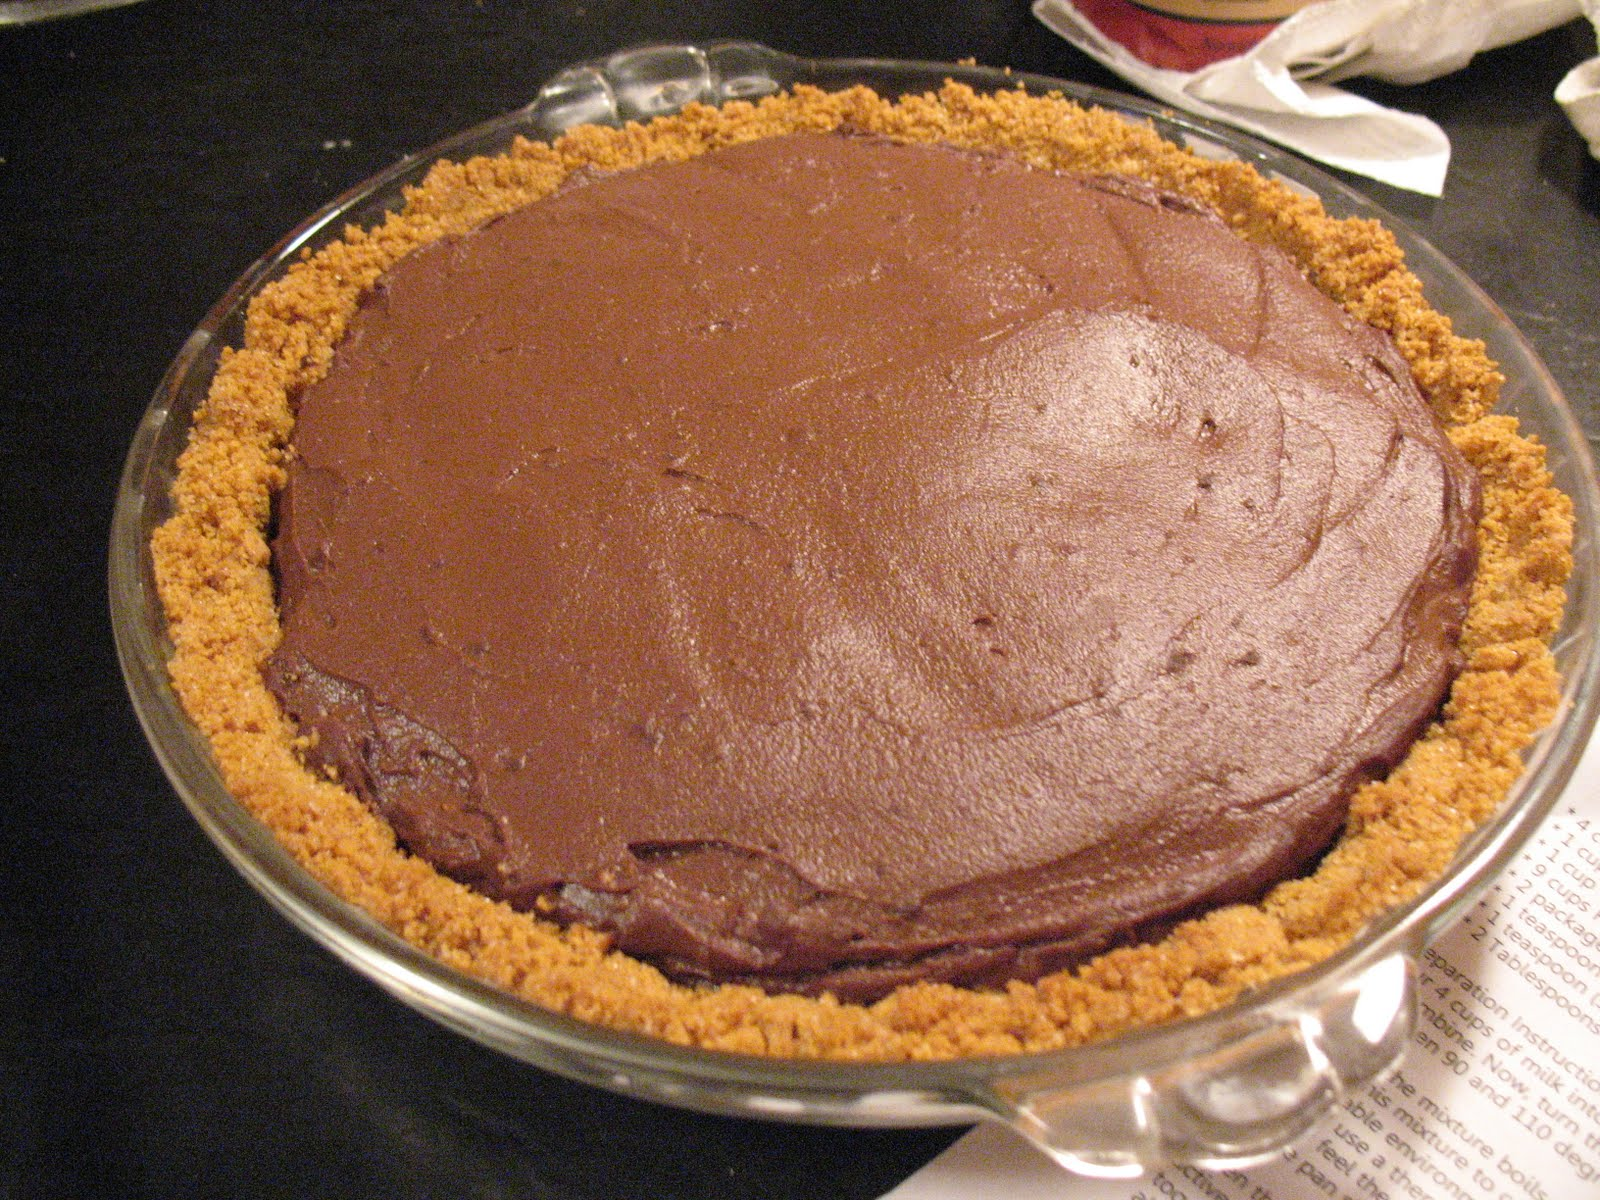 Sherry Starts Cooking: Chocolate Pudding Pie